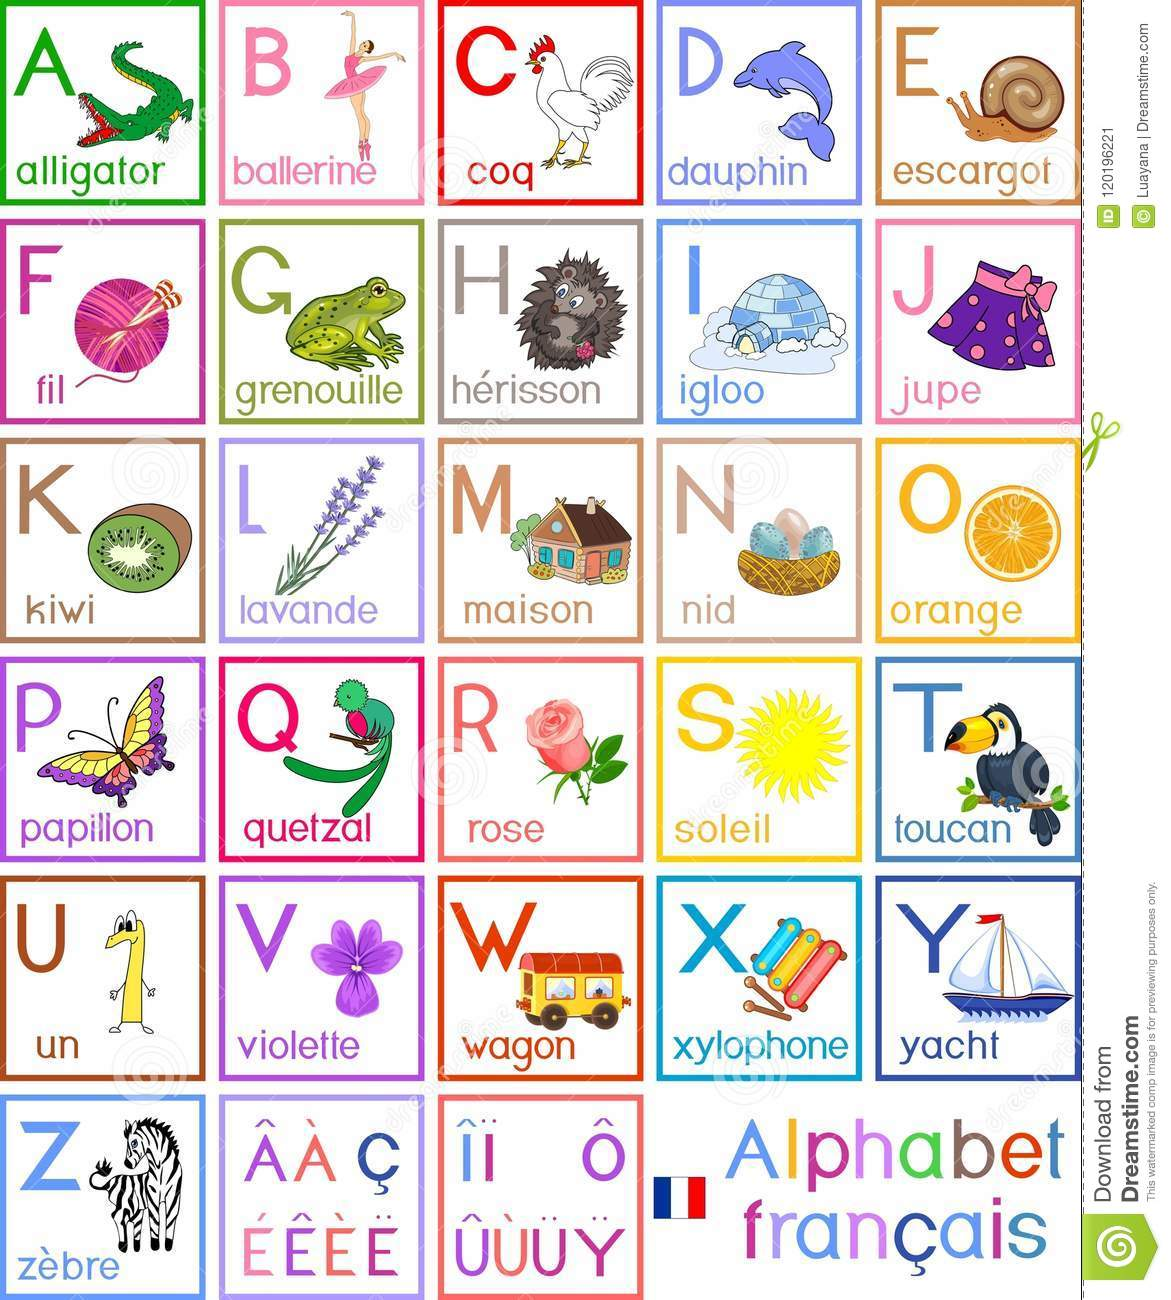 French Alphabet With Pictures And Titles For Children